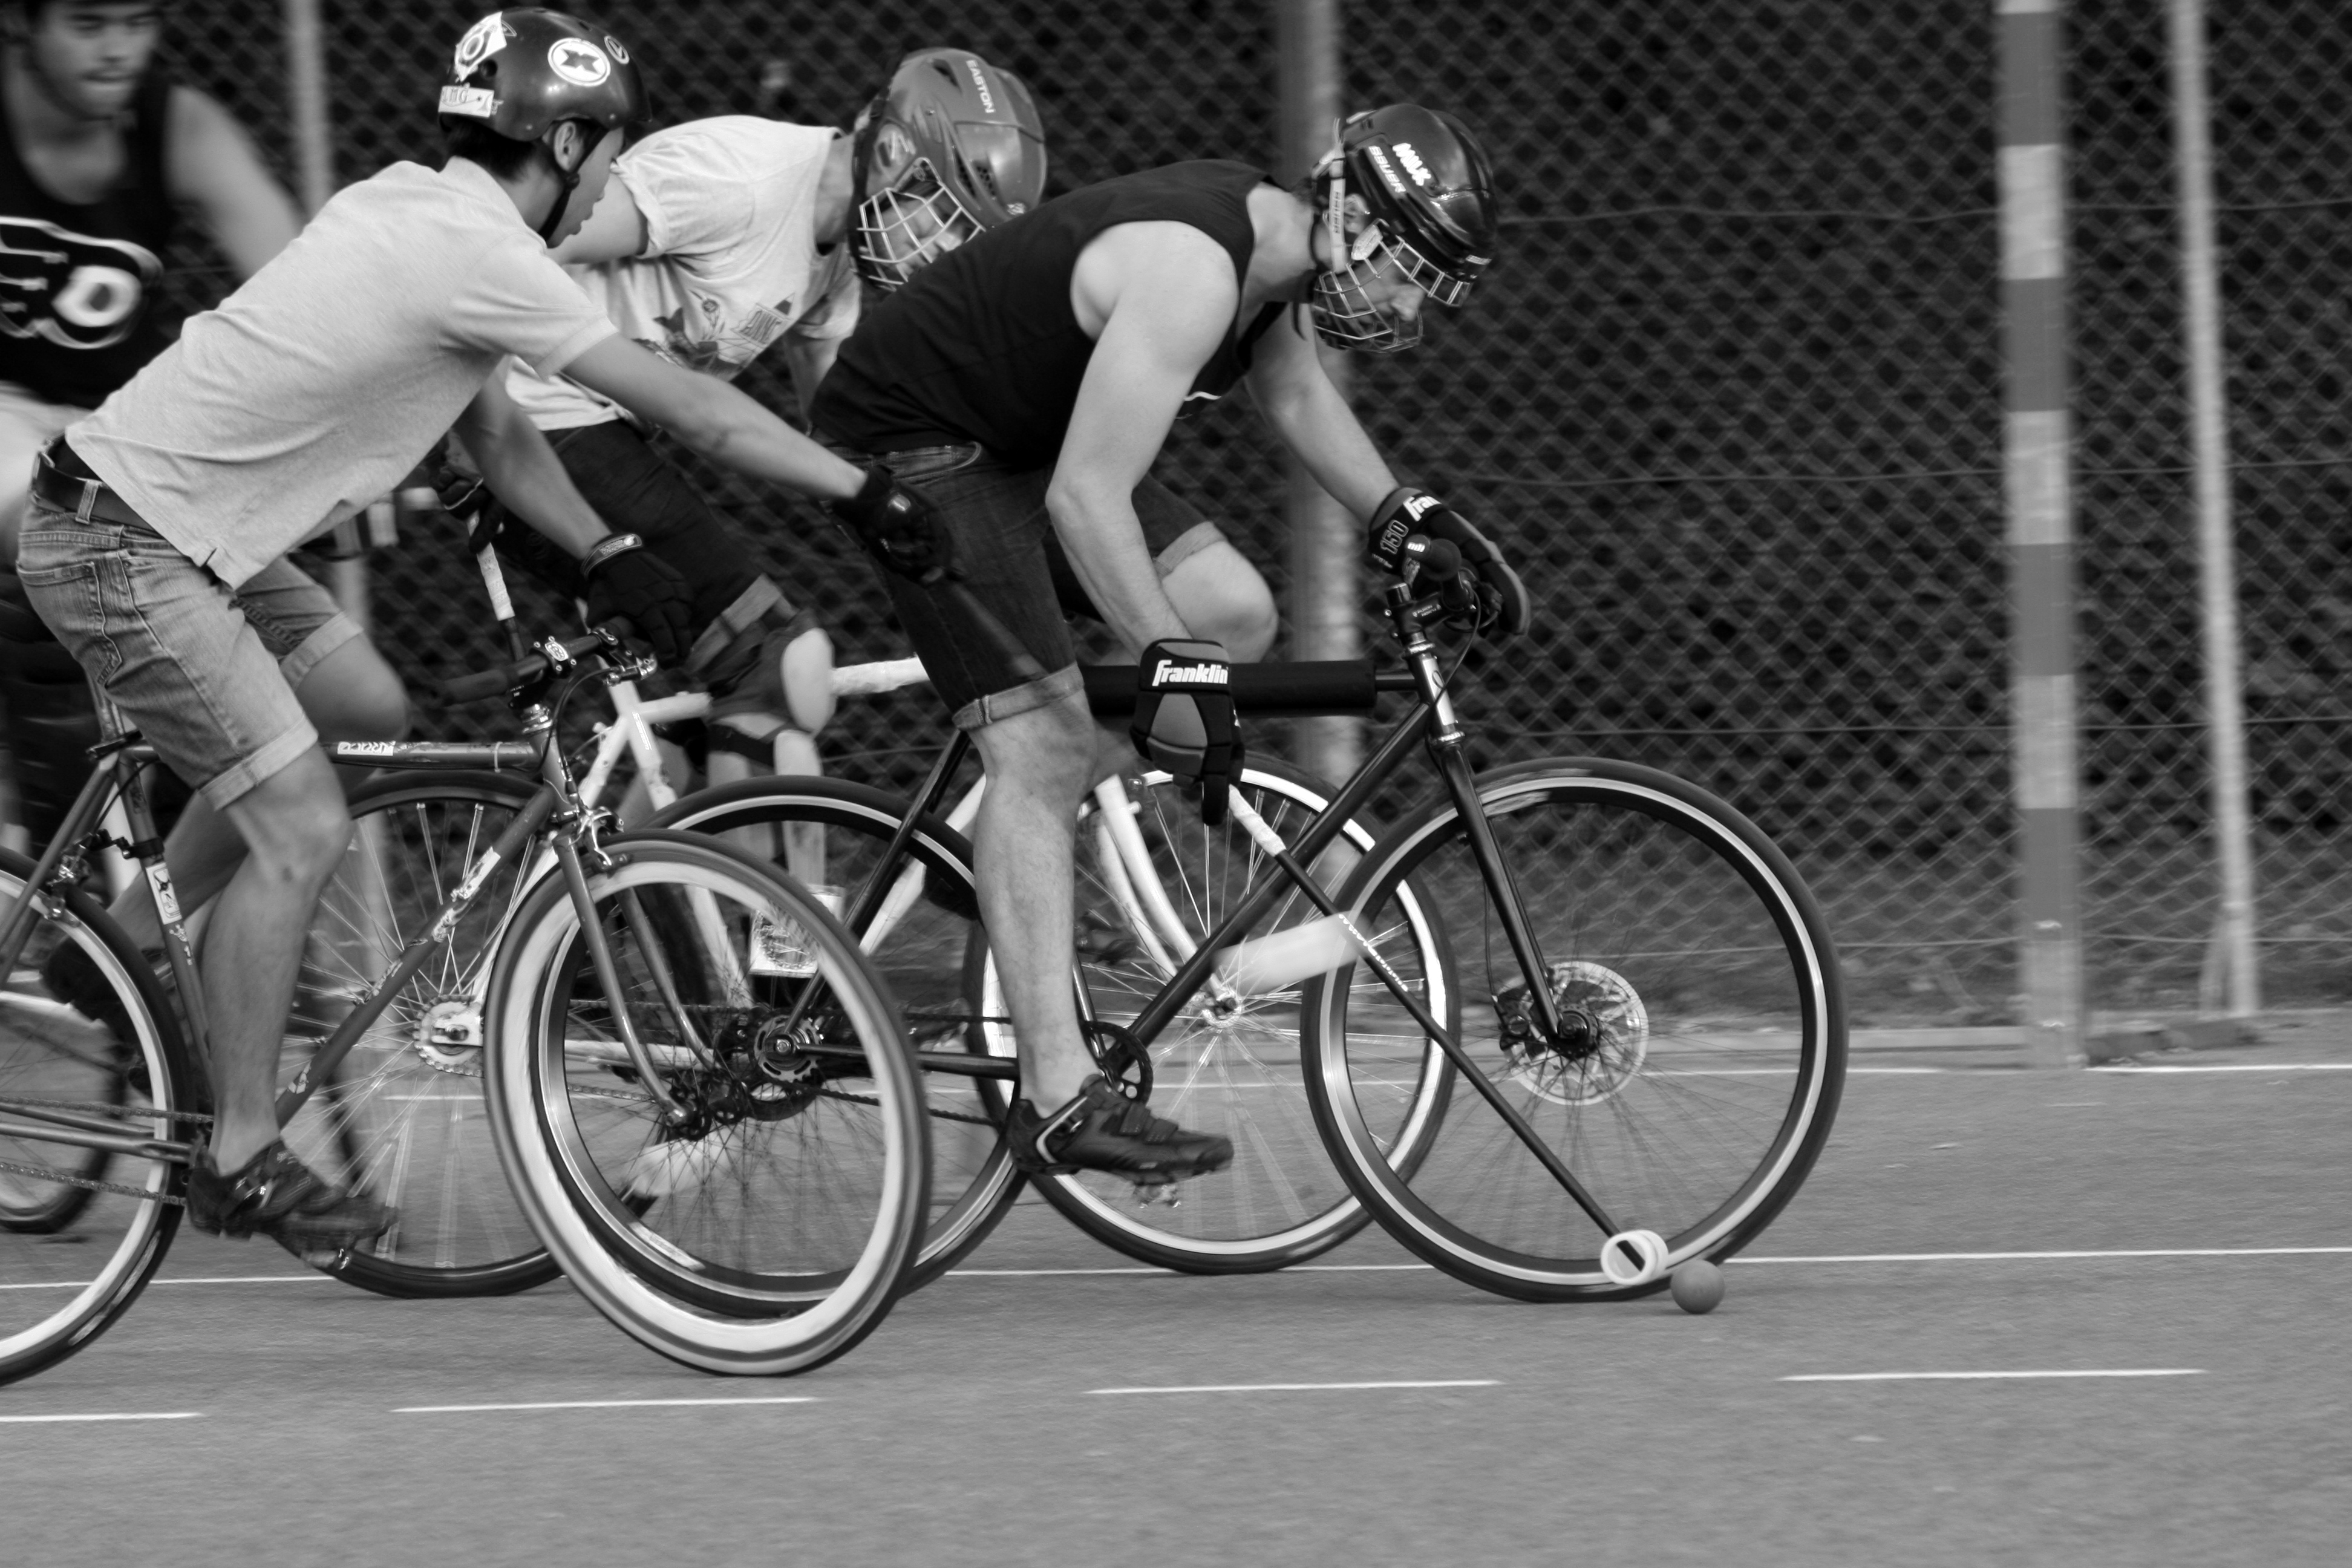 Bike Polo, 27/28 Juin à Annecy, 3ème tournoi du Brochet d'Or